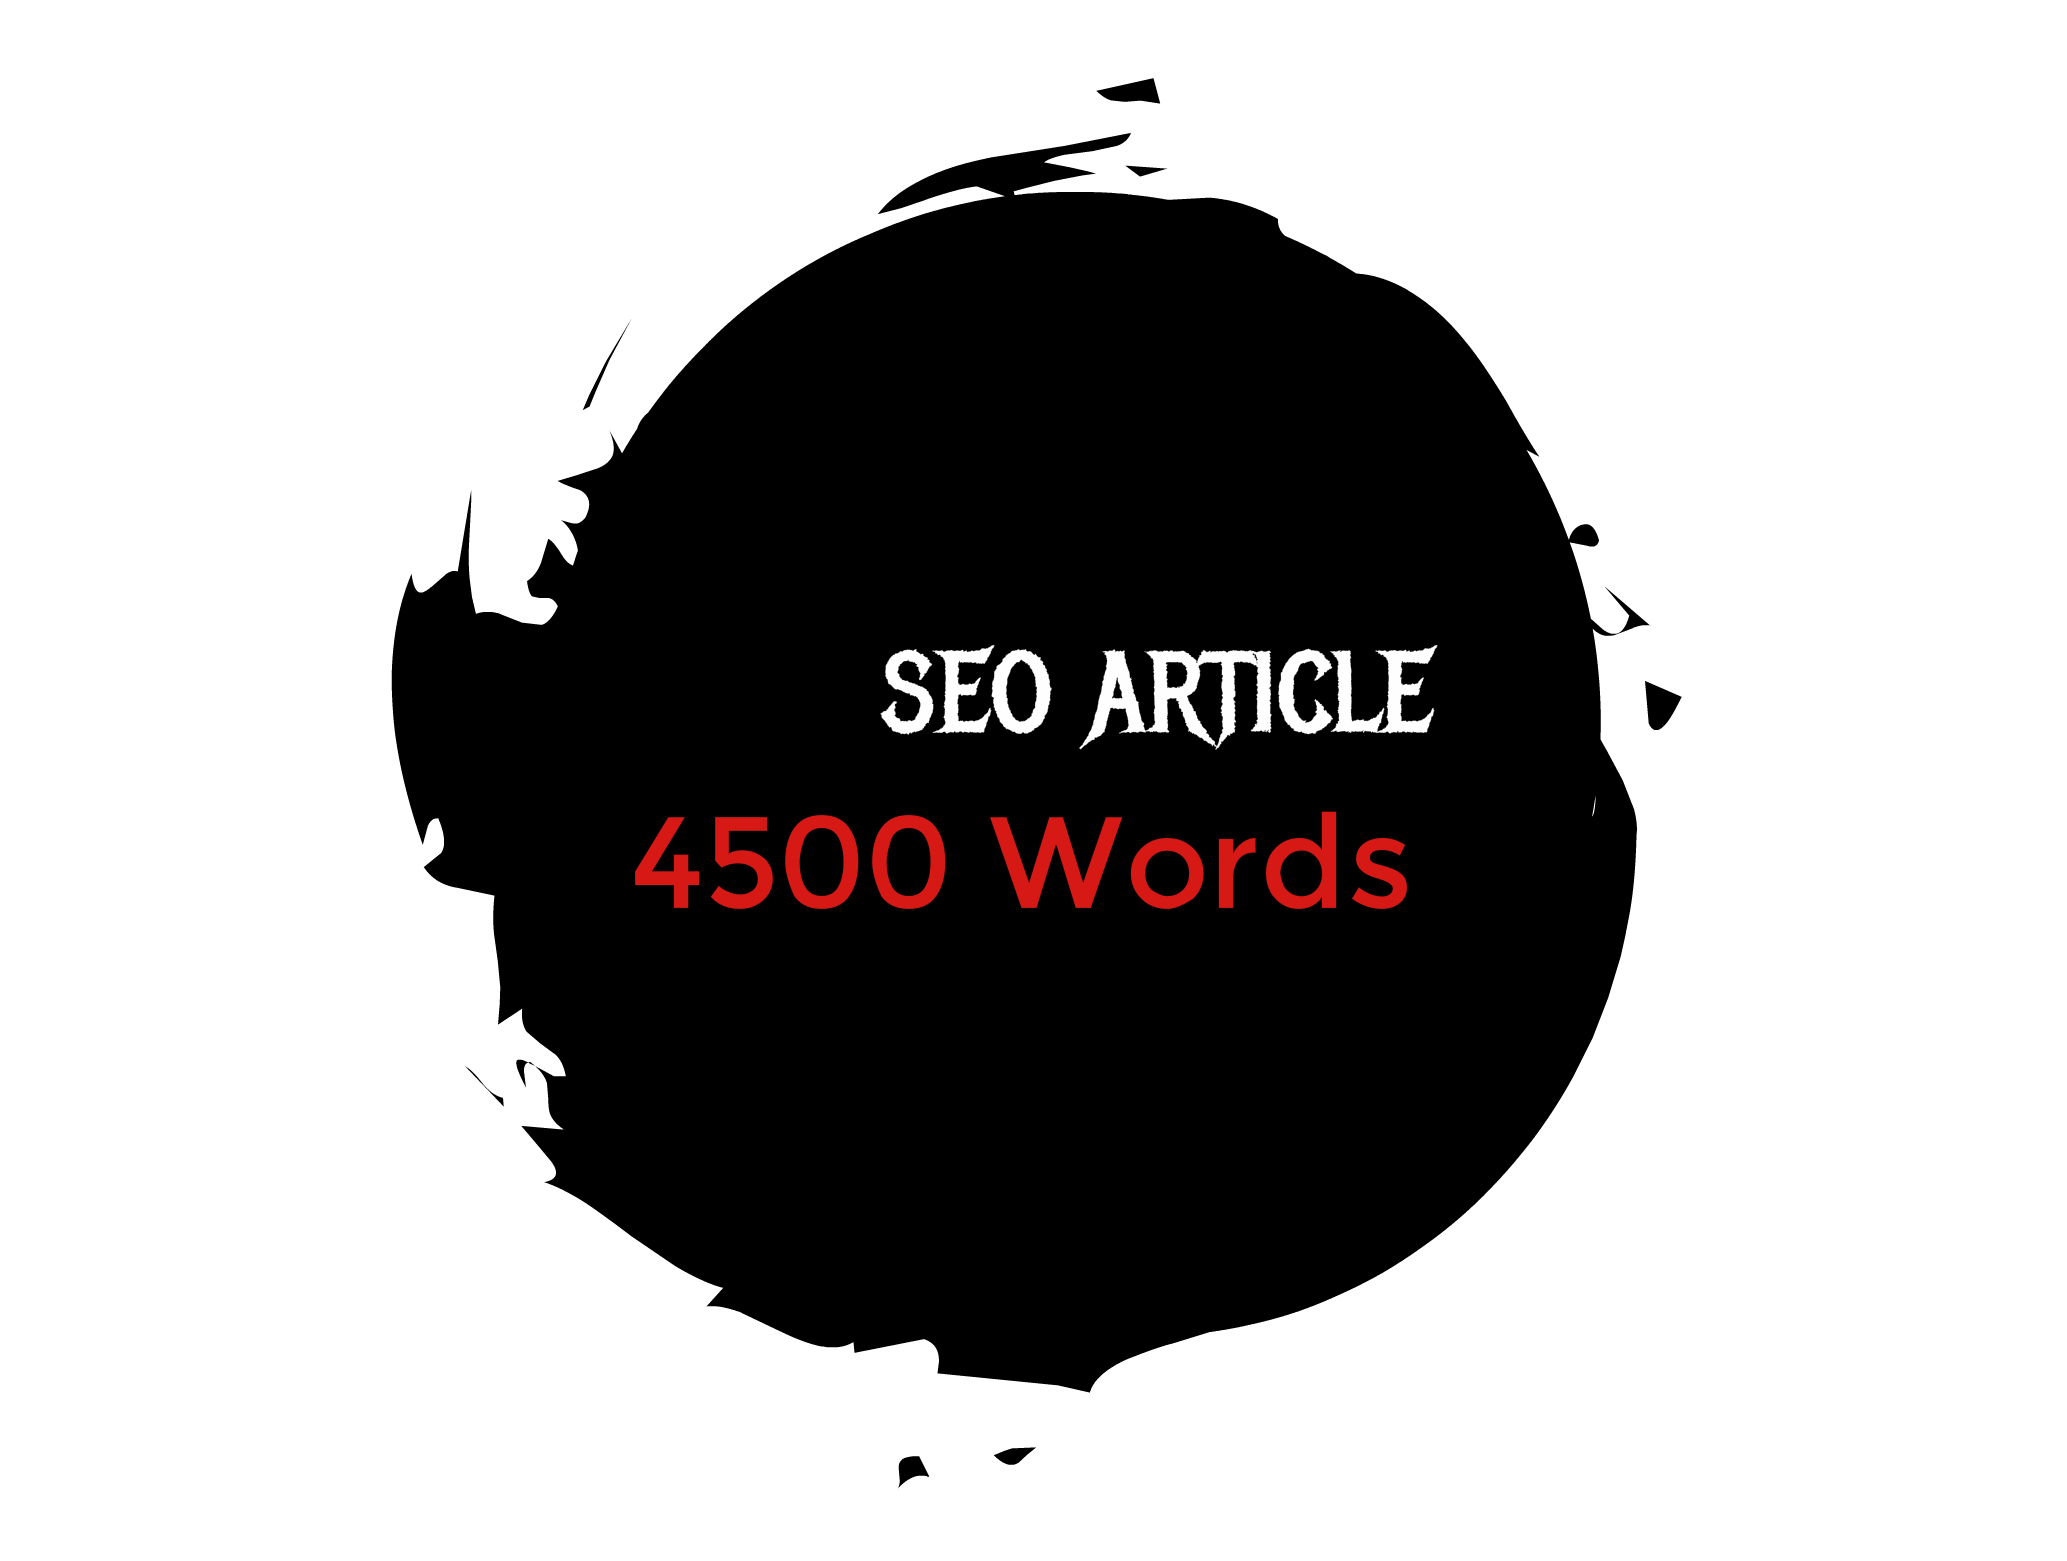 SEO Article 4500 Words